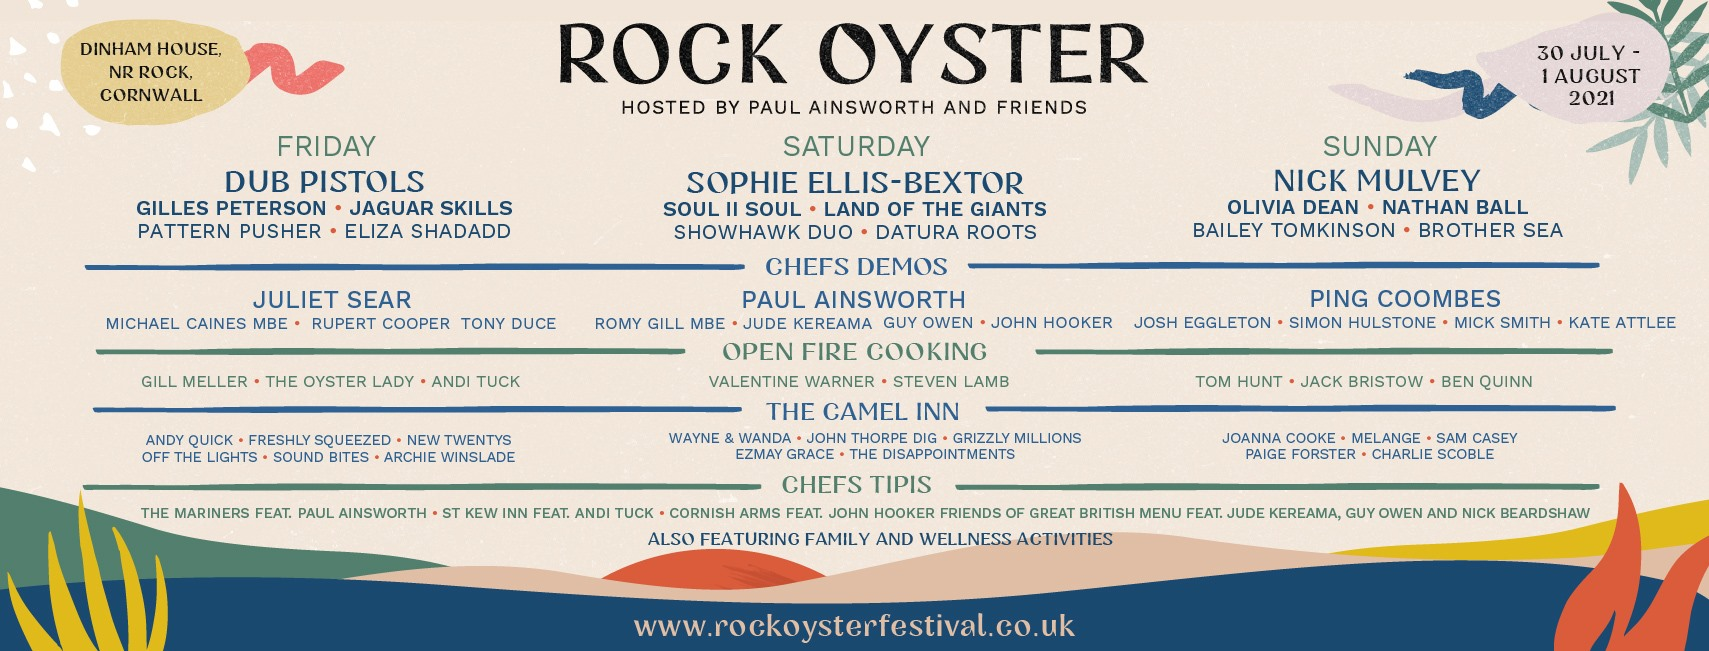 The Rock Oyster Festival